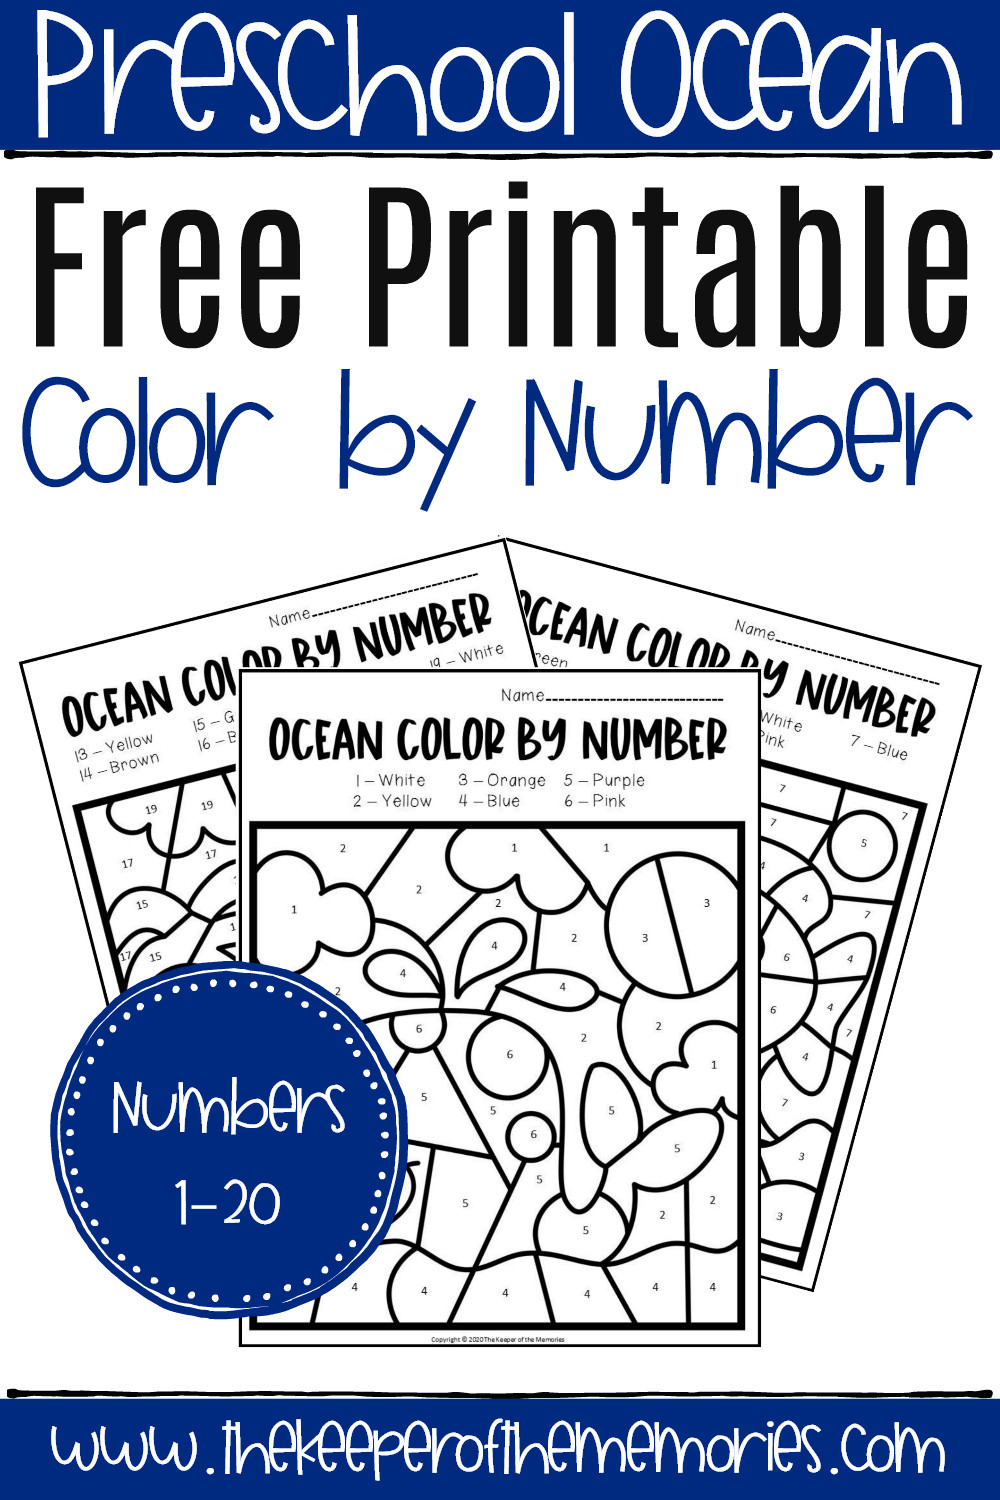 Ocean Worksheets for Preschool Free Printable Color by Number Ocean Preschool Worksheets